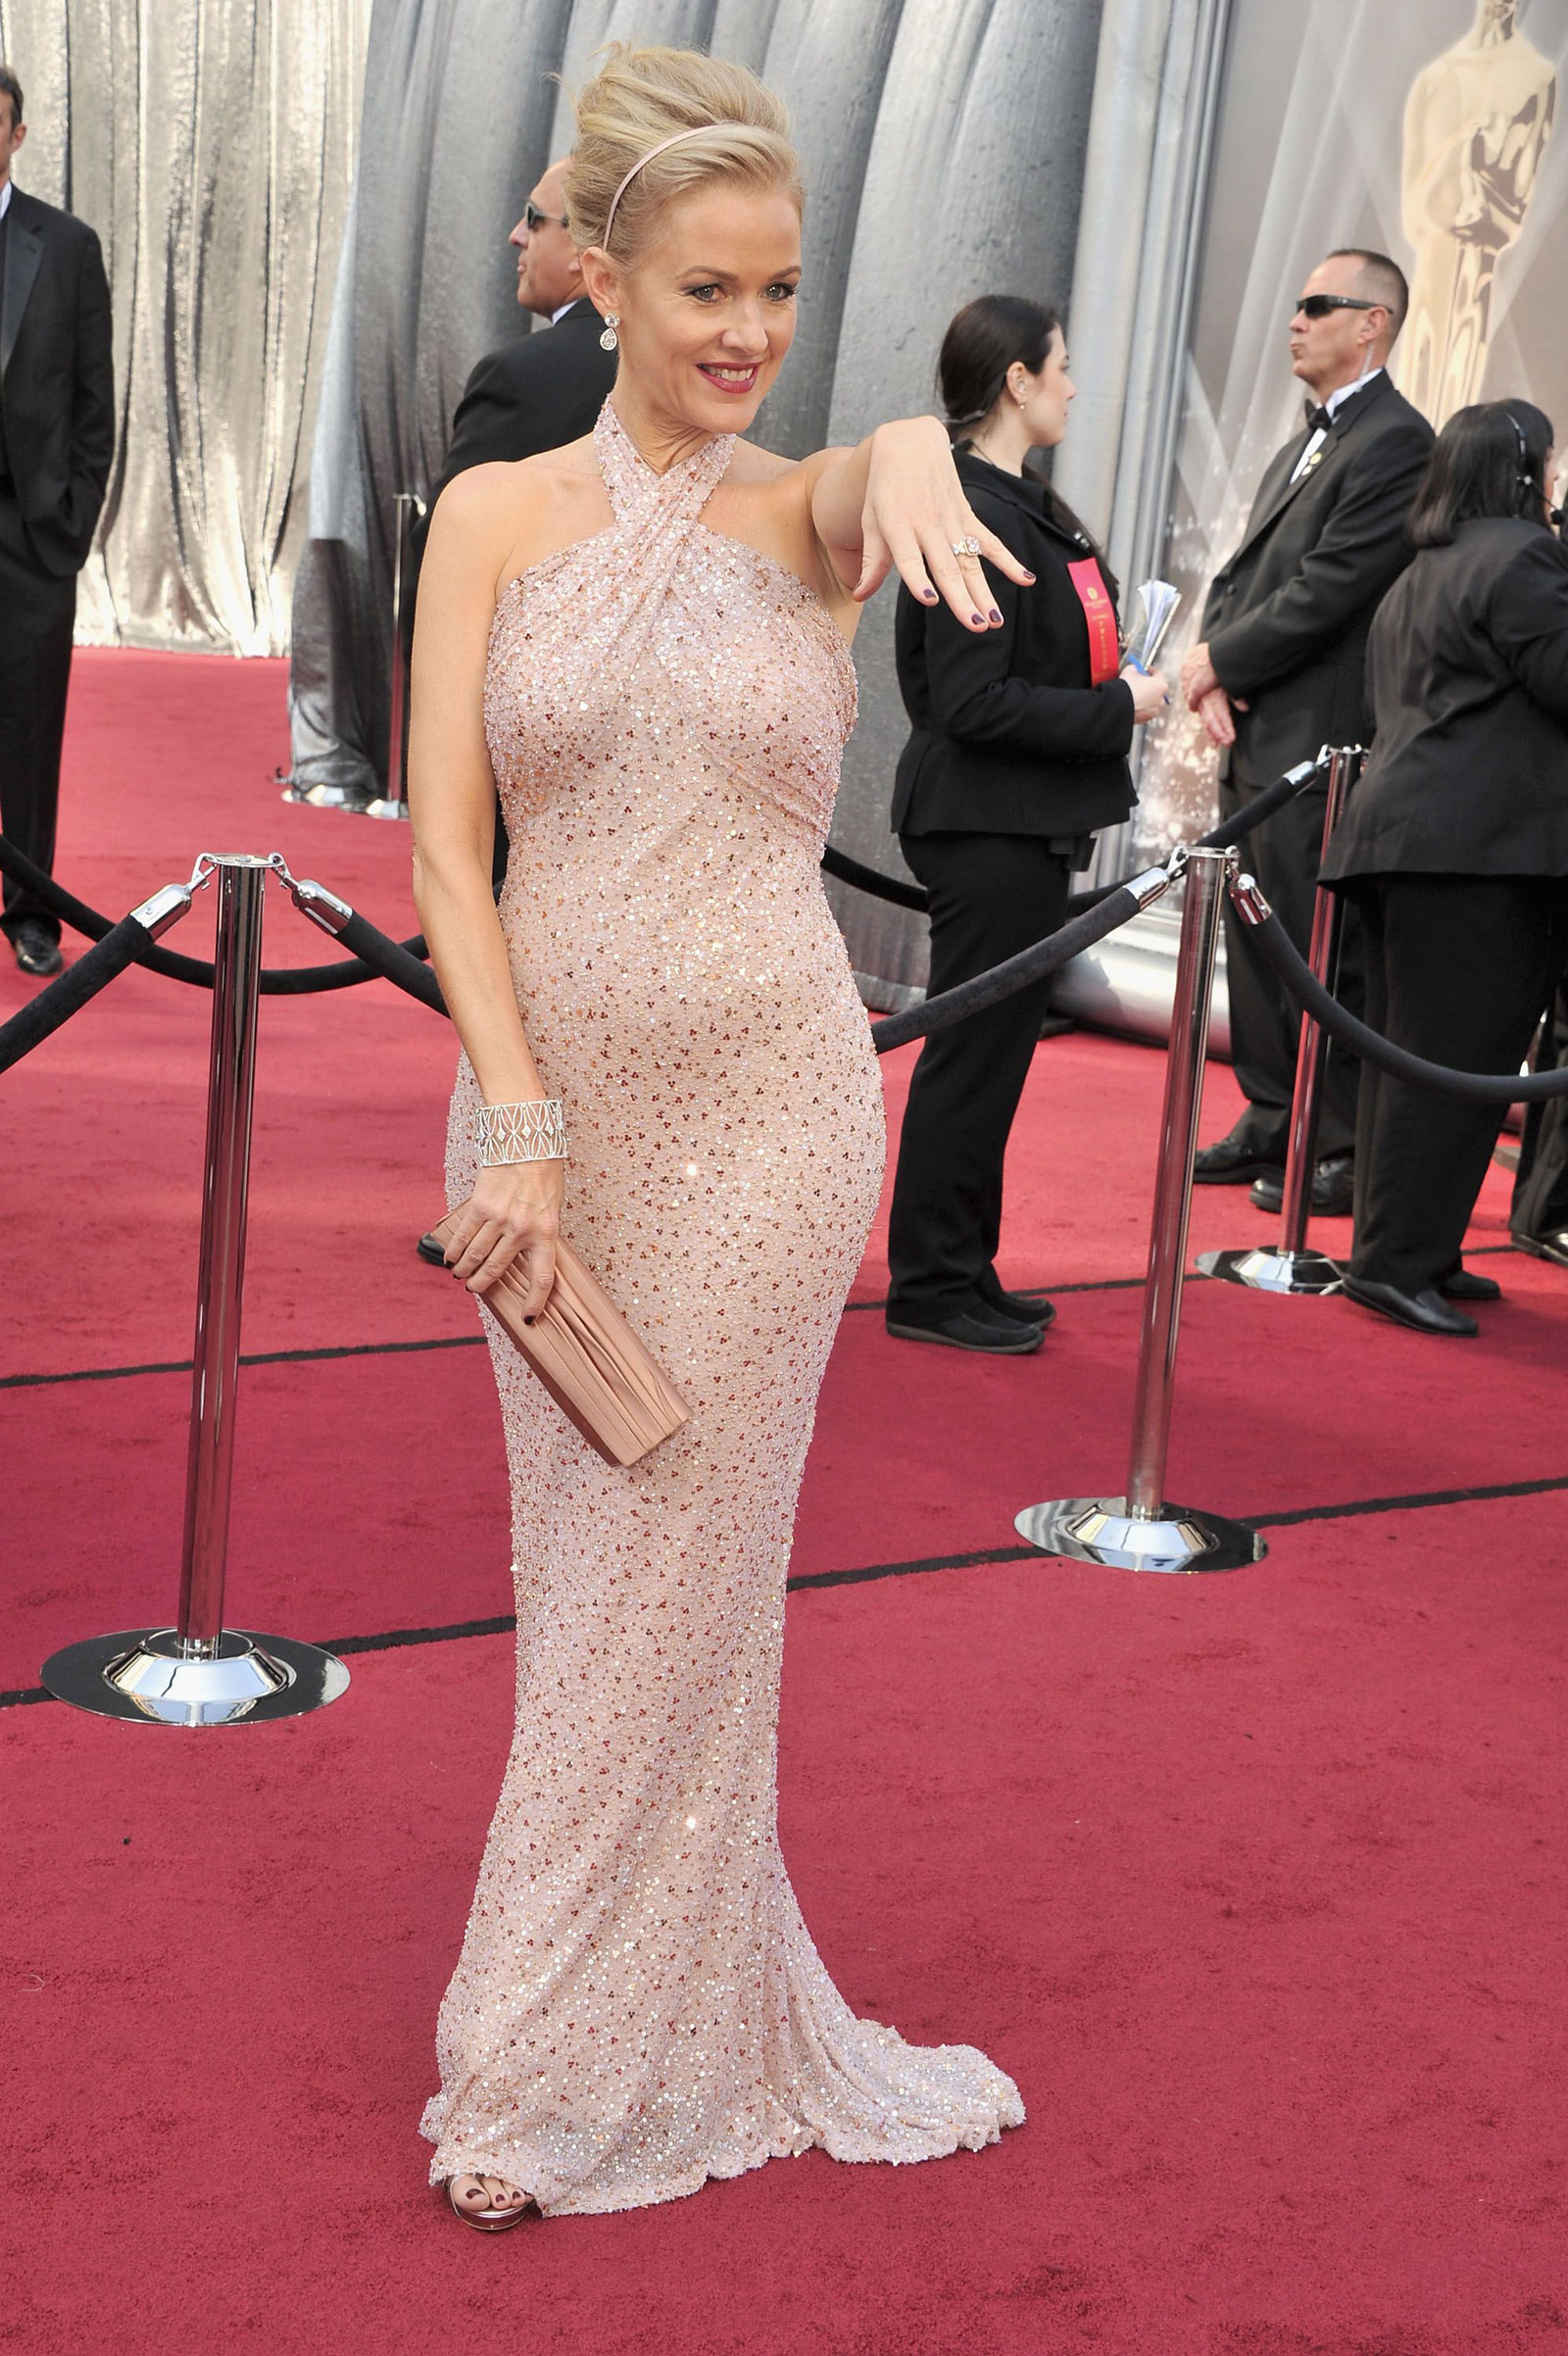 Penelope-Ann-Millerl-at-84th-Annual-Academy-Awards-in-Los-Angeles-3.jpg (1600×2404)